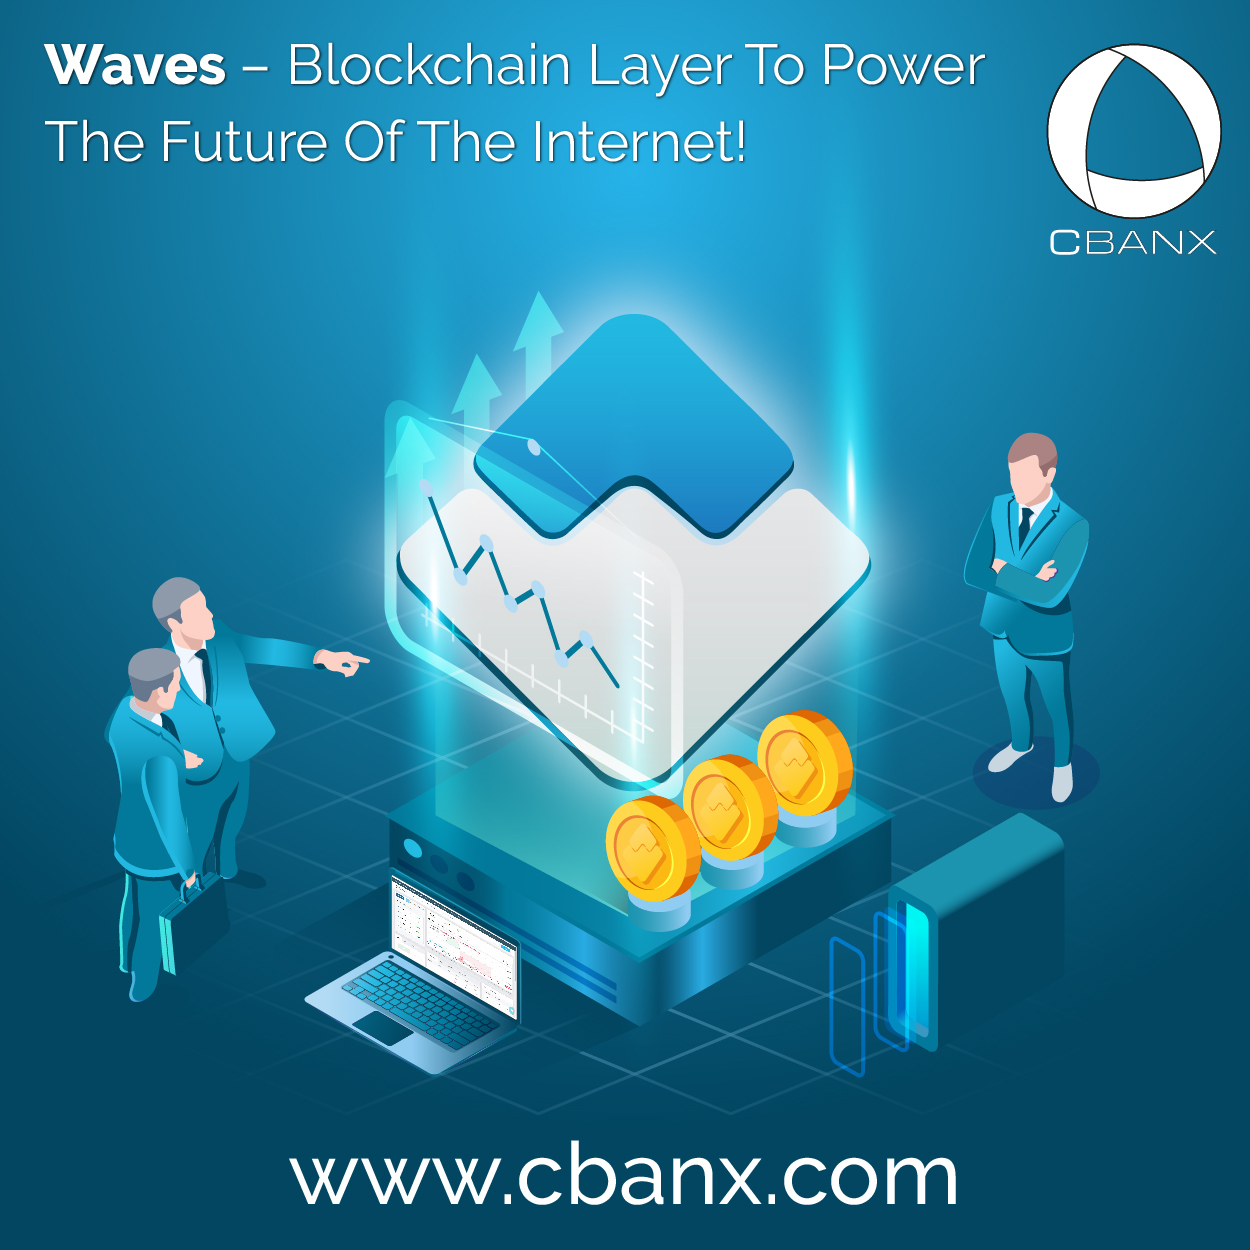 Waves – Blockchain Layer To Power The Future Of The Internet!